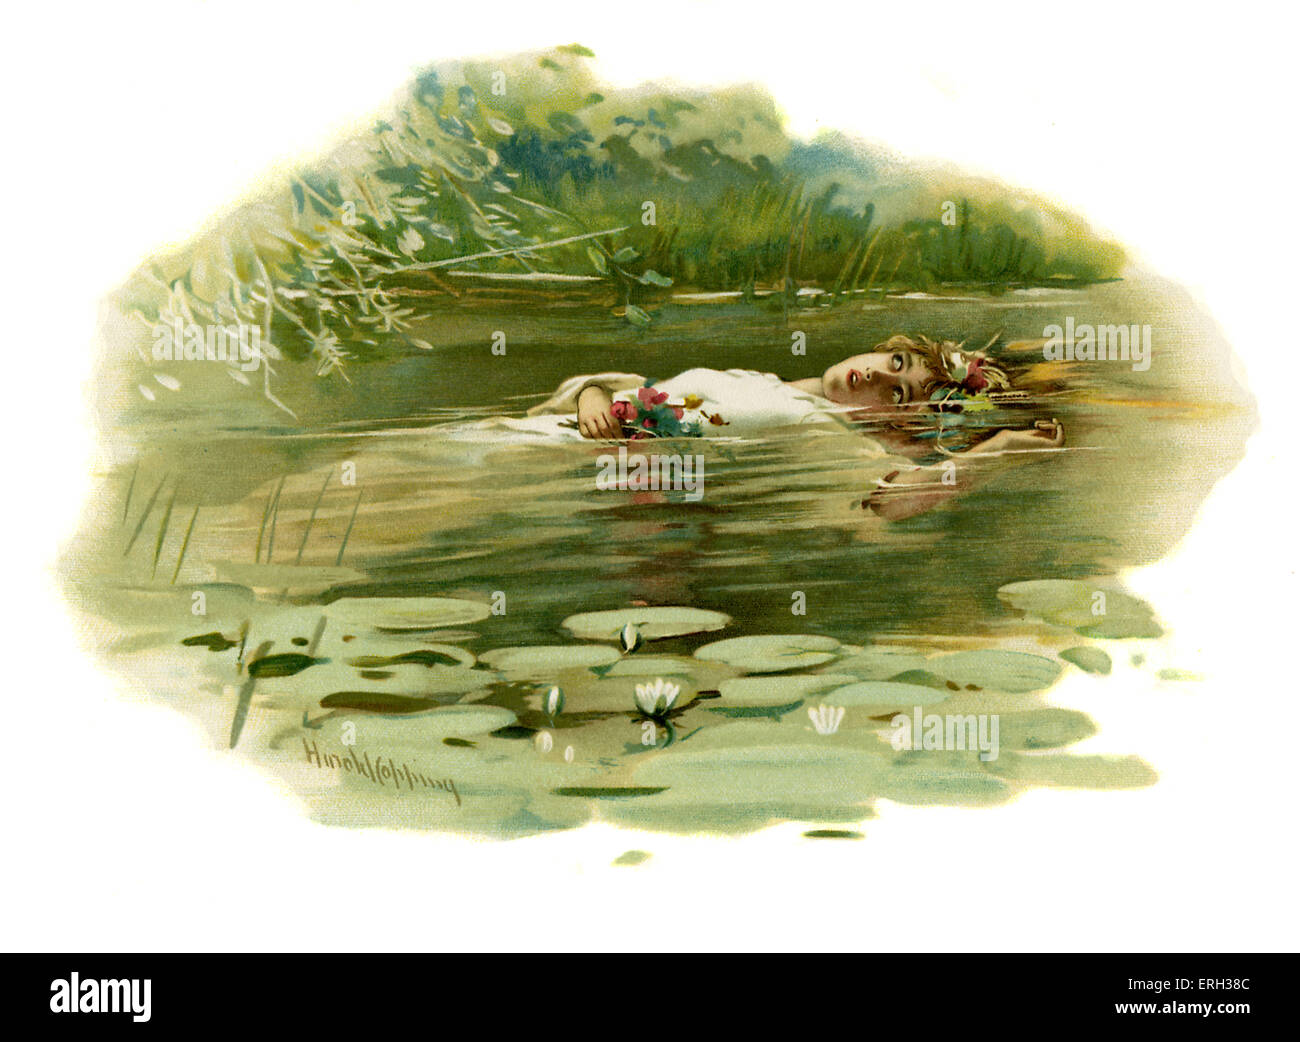 Ophelia drowning in Hamlet, Prince of Denmark by William Shakespeare. Act IV, Scene 7.   Illustration by Harold - Stock Image